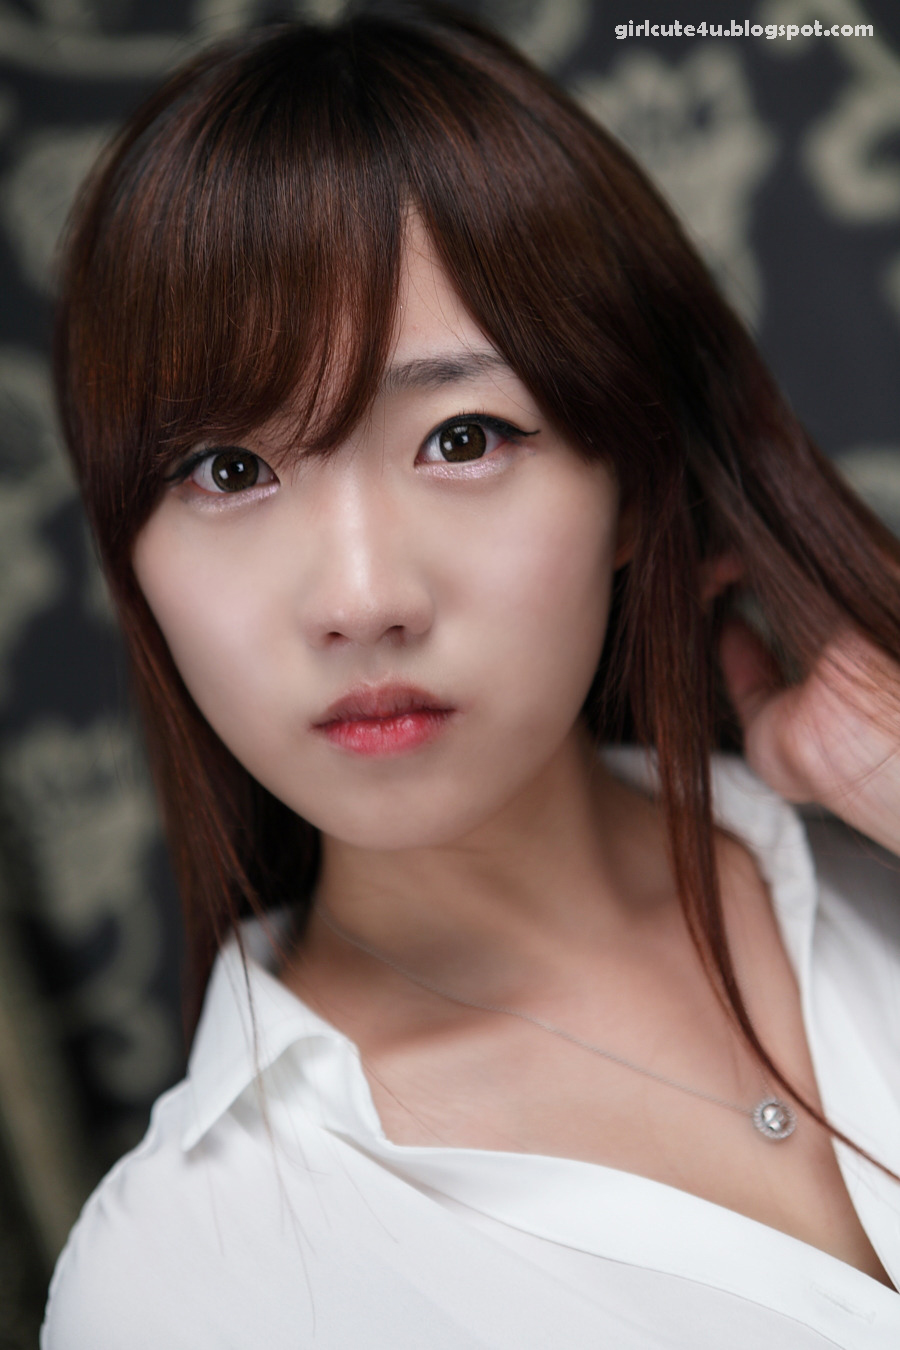 Cute Korean 15 Girl So Yeon Yang Going To Office Cute Girl